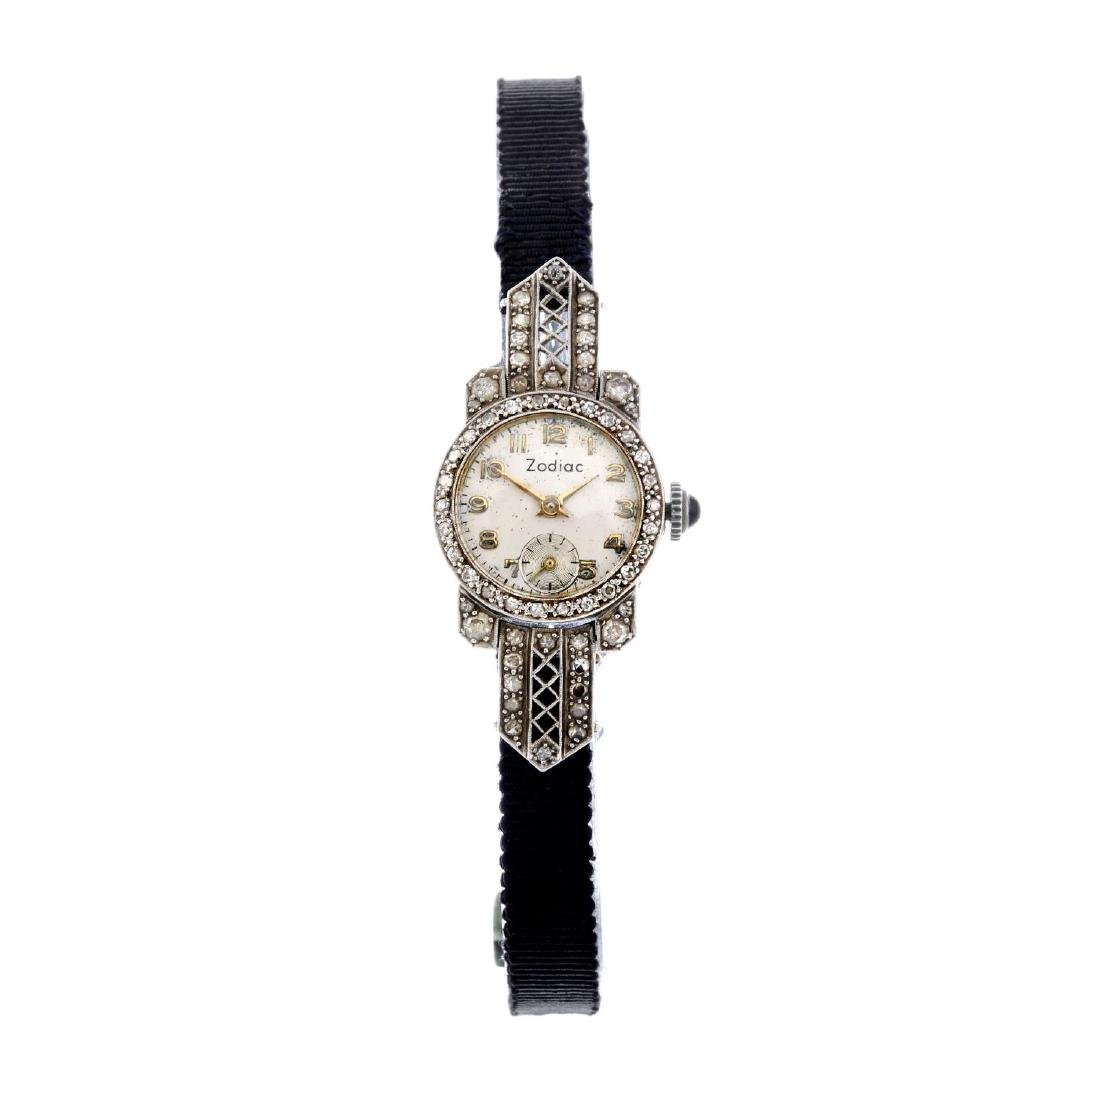 ZODIAC - a lady's cocktail watch. Stainless steel